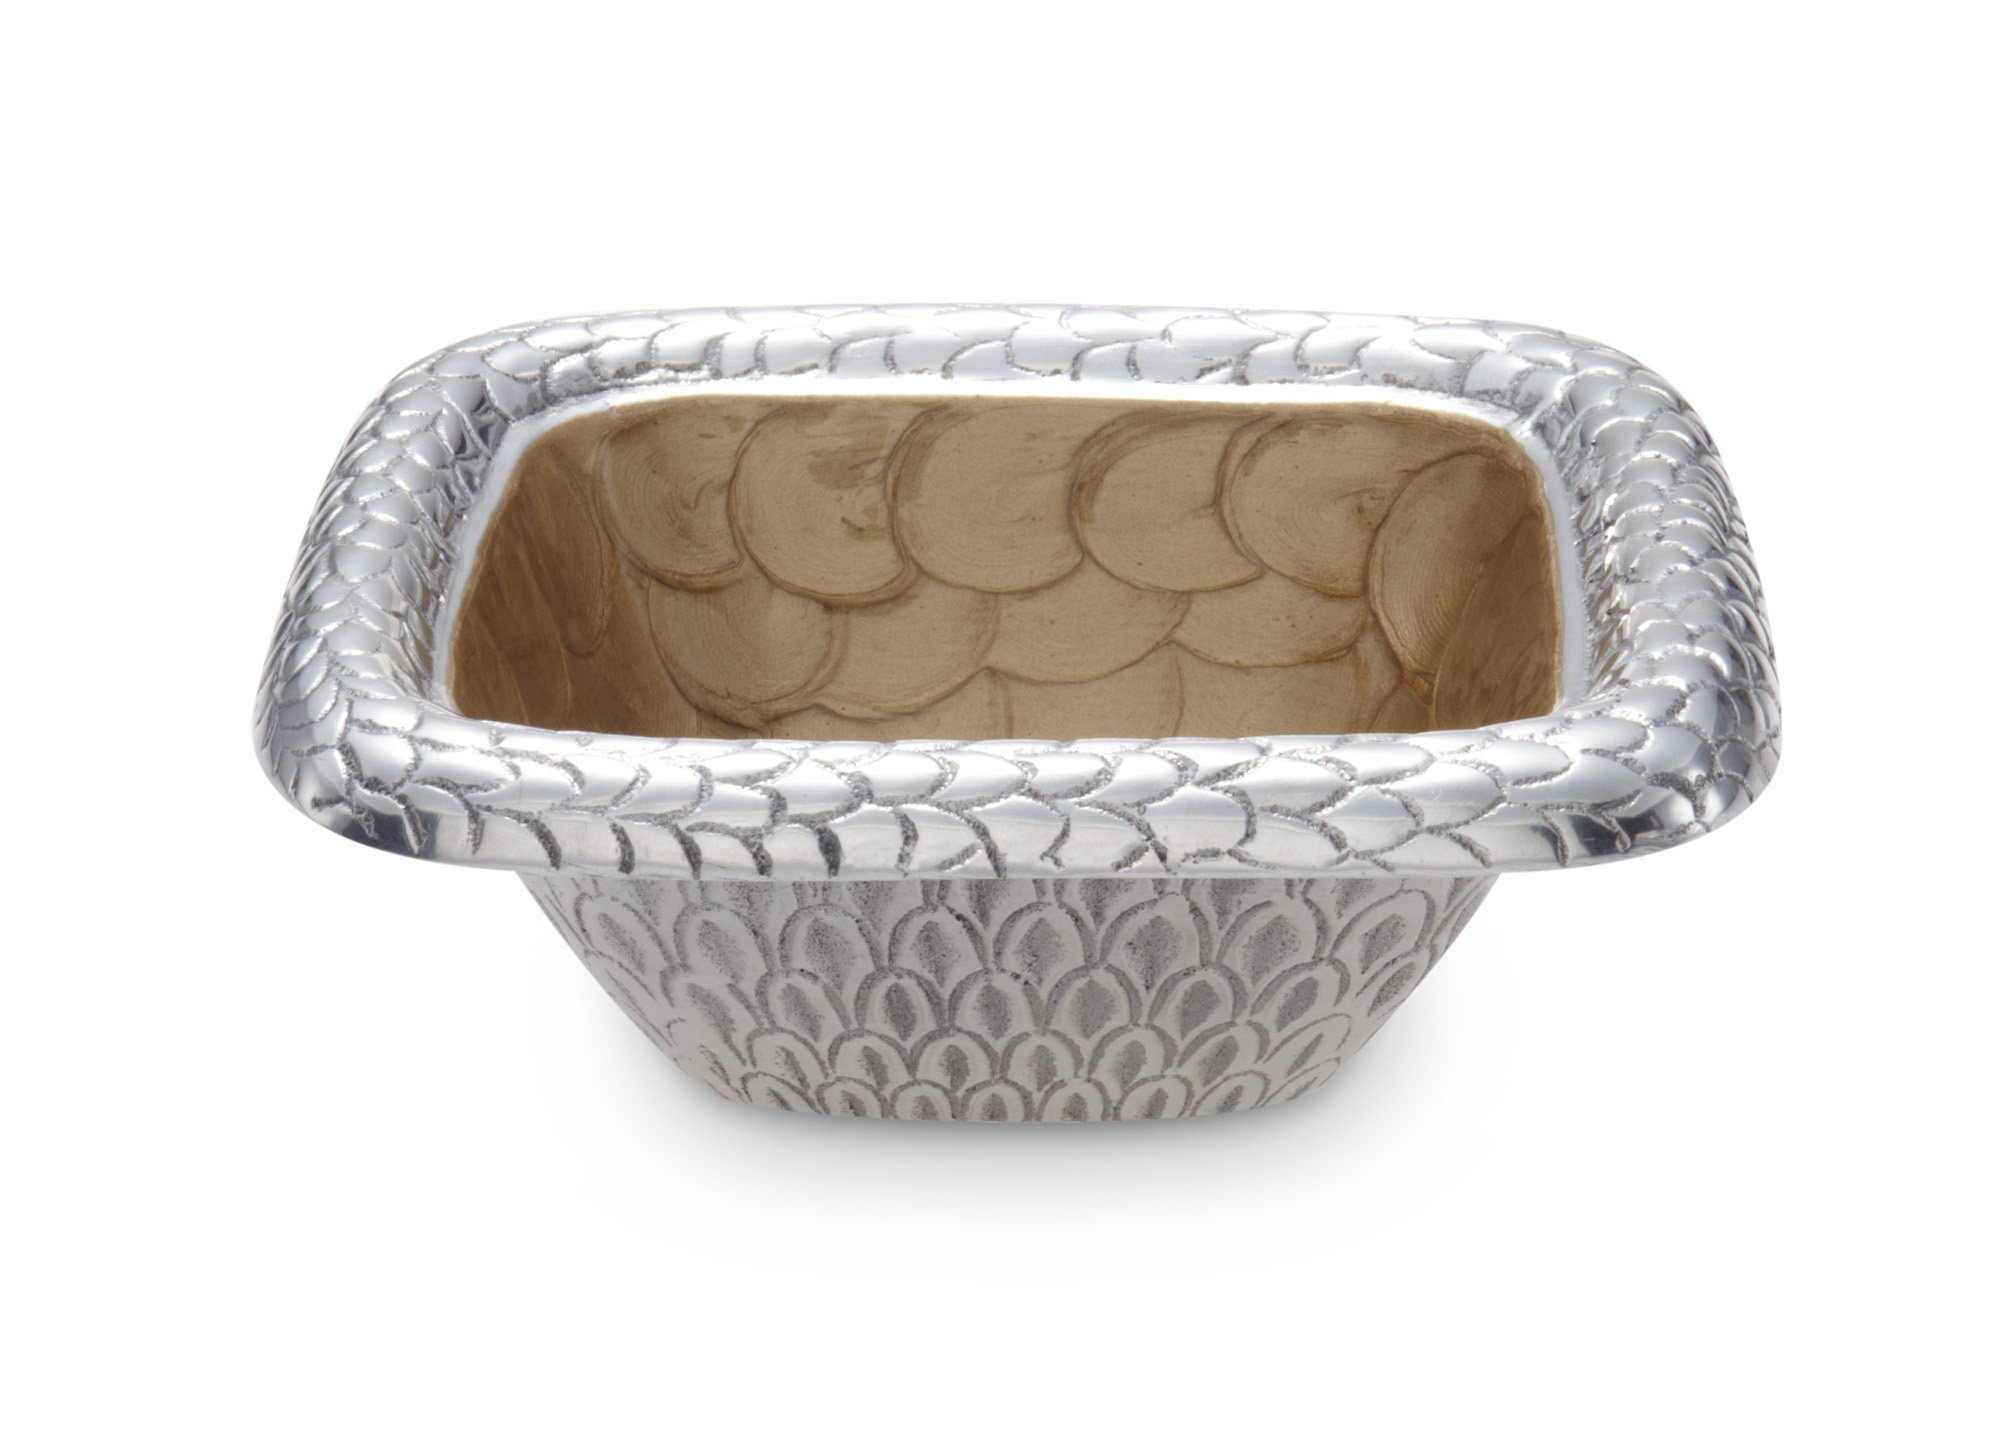 Julia Knight Florentine Square Bowl, 6.25-Inch, Toffee, Brown